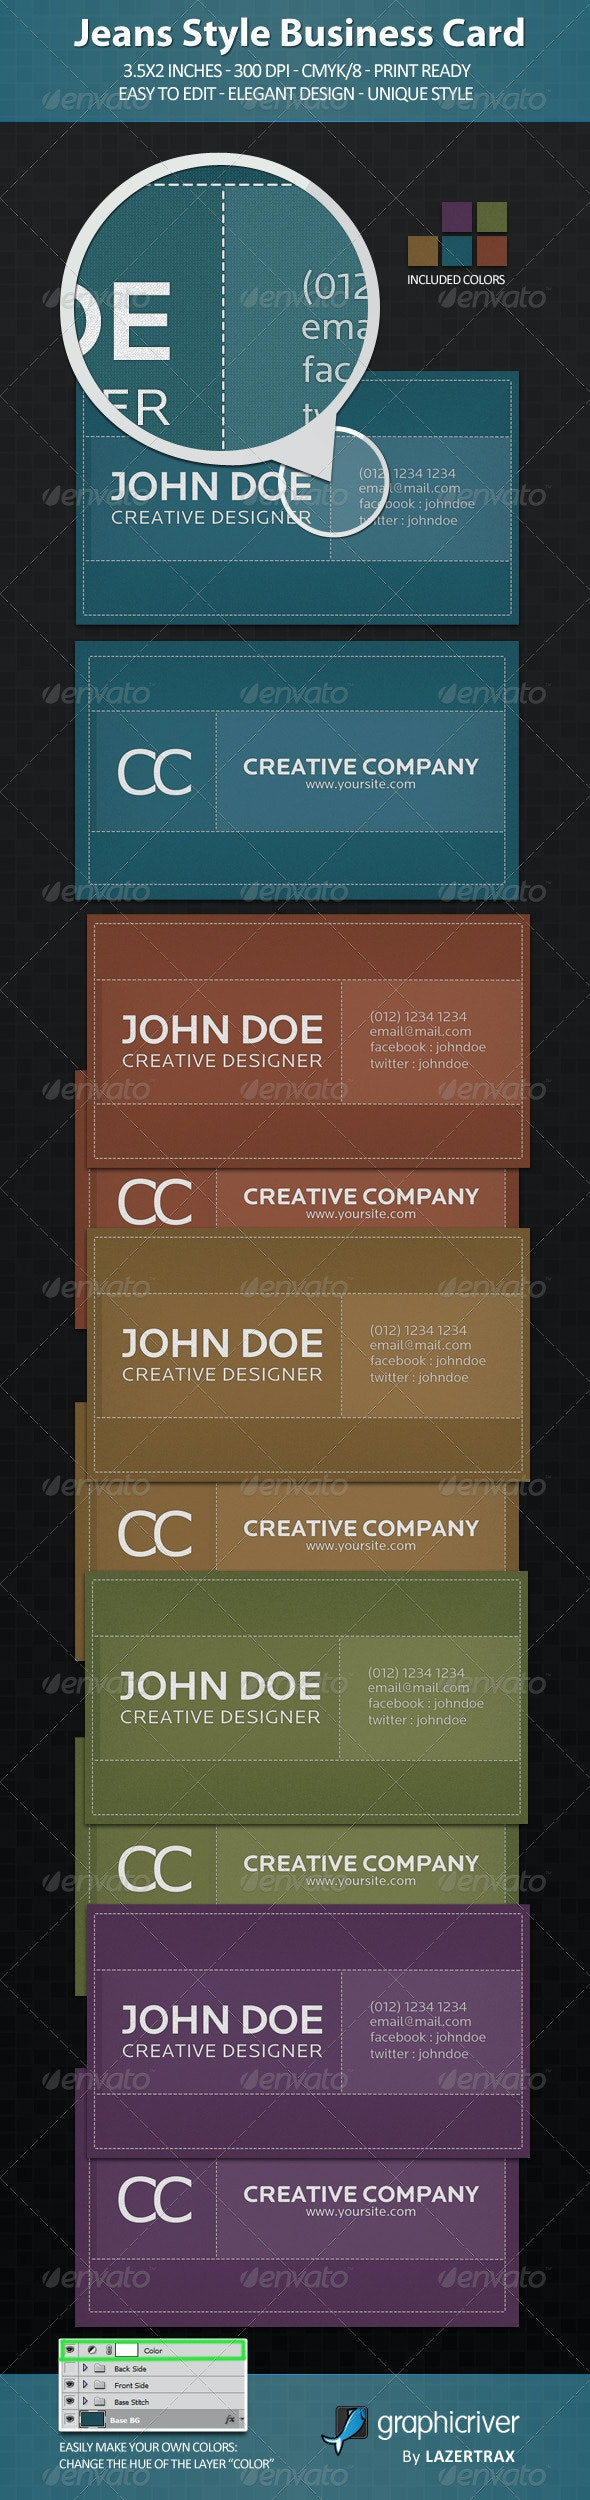 Jeans Style Business Card - Creative Business Cards